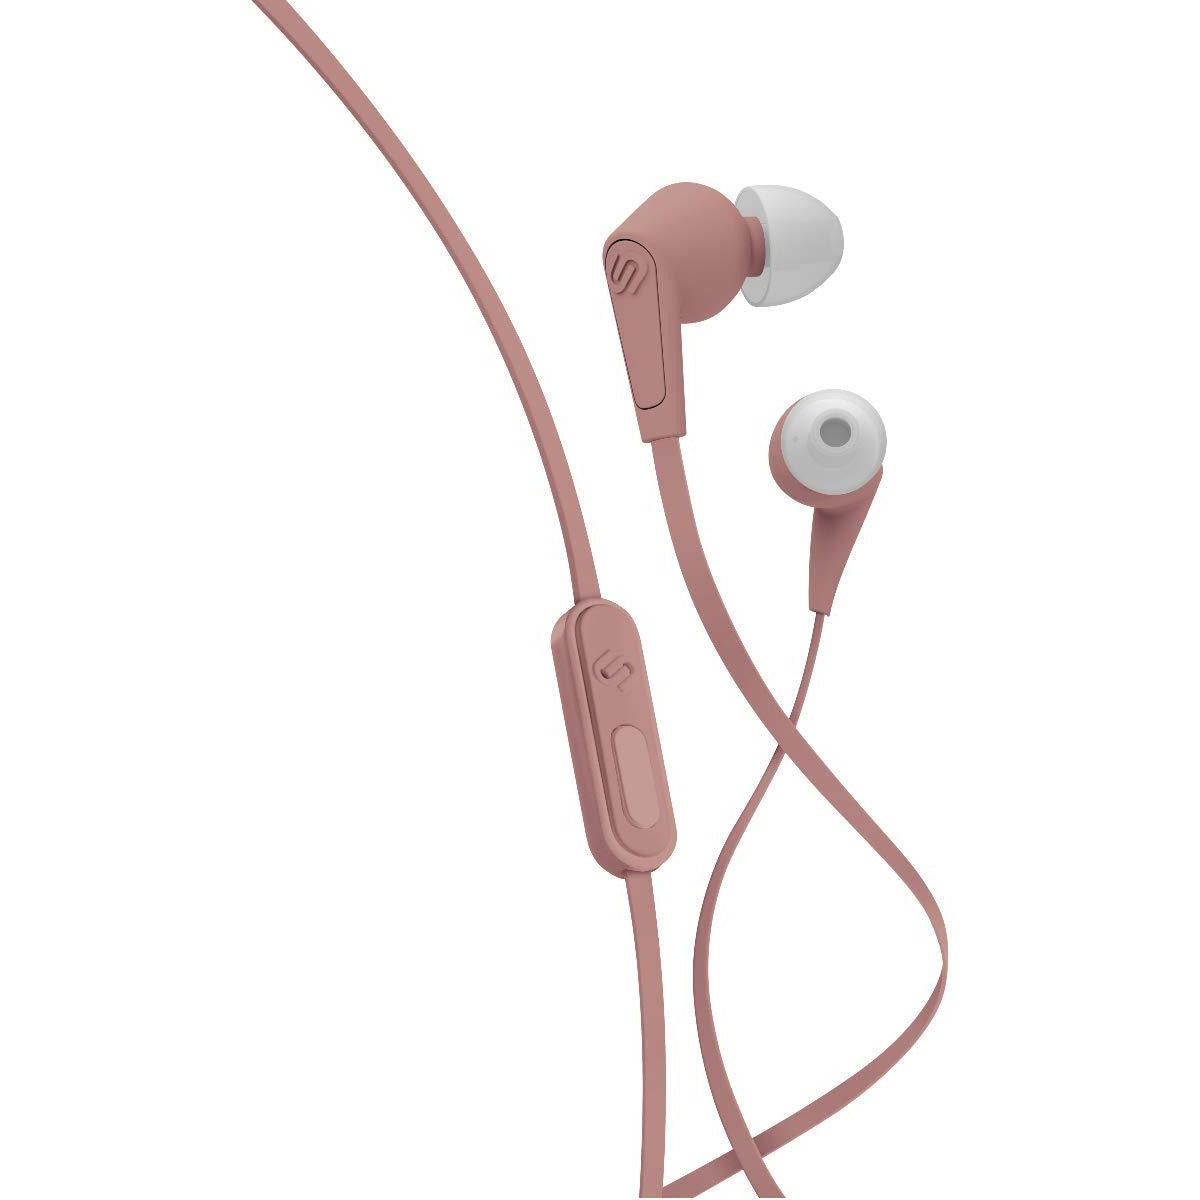 Urbanista Barcelona In-Ear Earphones with Mic Rose Gold [Accessories]